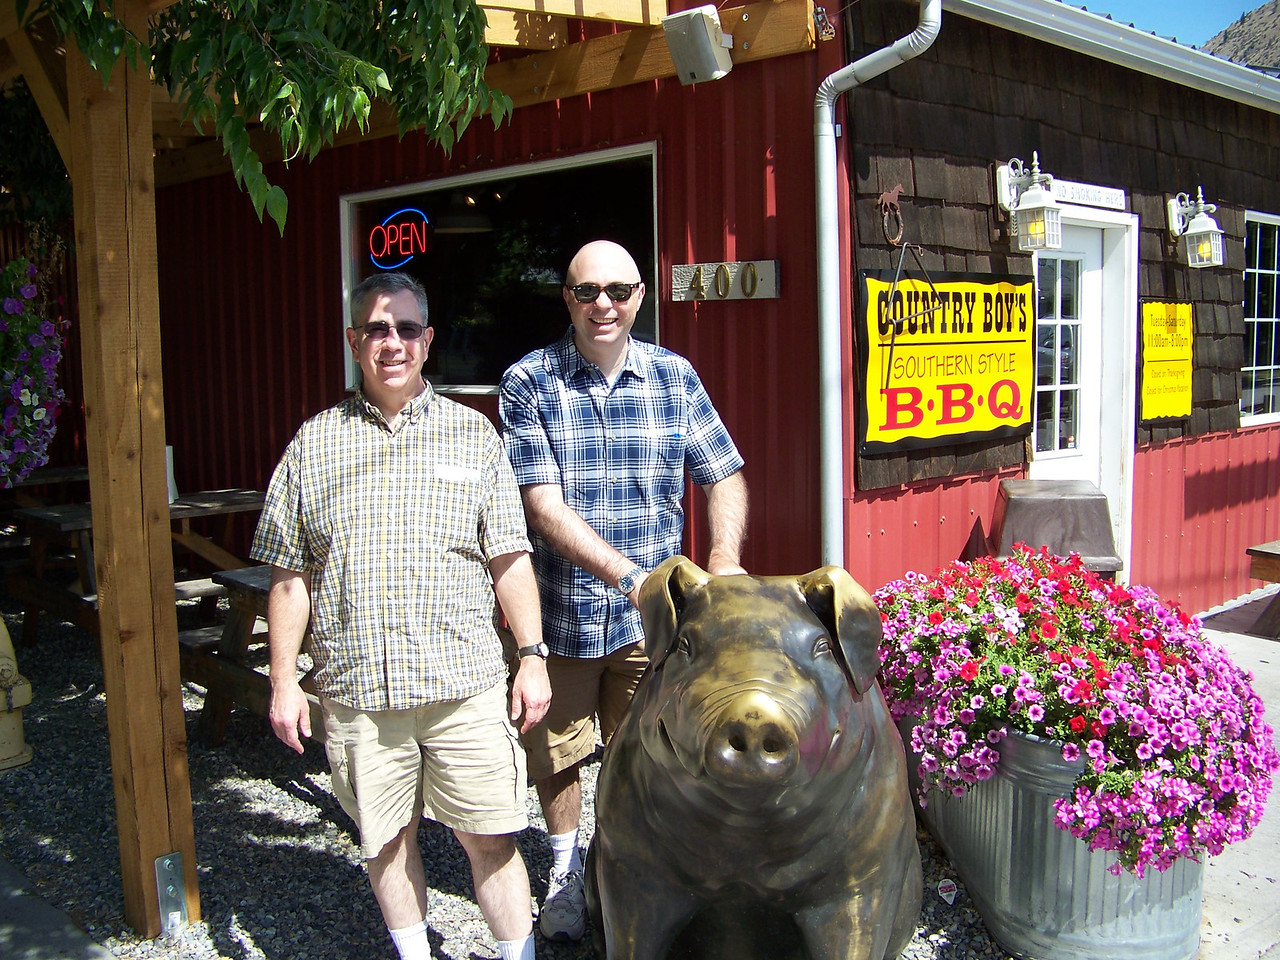 """From Leavenworth, we drove fifteen minutes east to the town of Cashmere.  We had a great lunch at <b><a target=""""_new"""" href=""""http://www.countryboysbbq.com/"""">Country Boy's BBQ</a></b>, where Dave and Pat posed with their pig statue."""